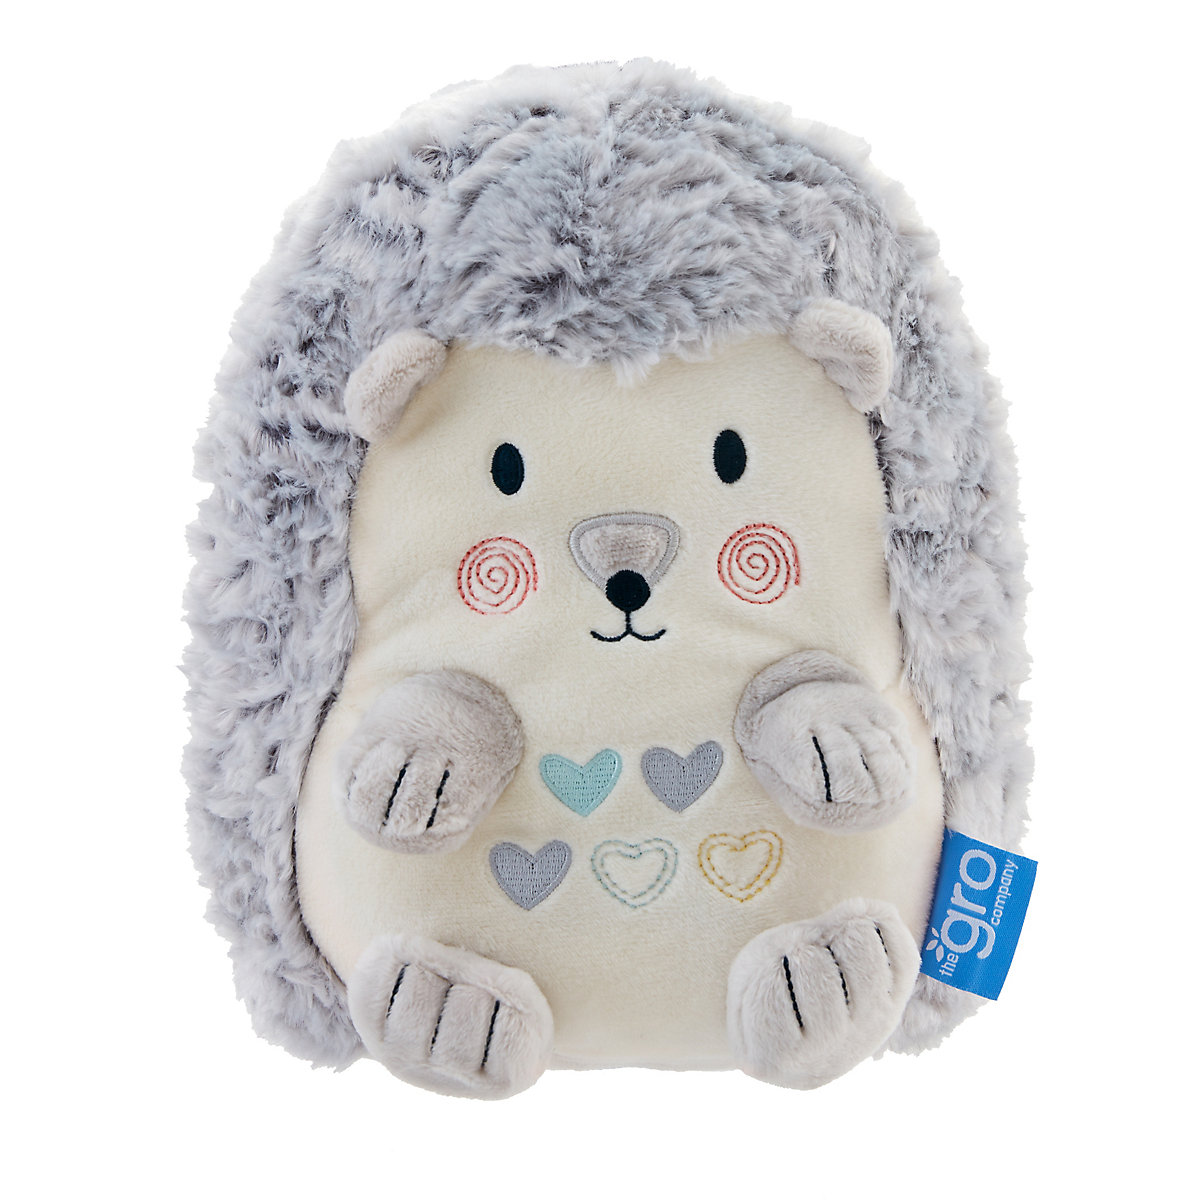 Gro henry the hedgehog light and sound sleep aid *exclusive to mothercare*